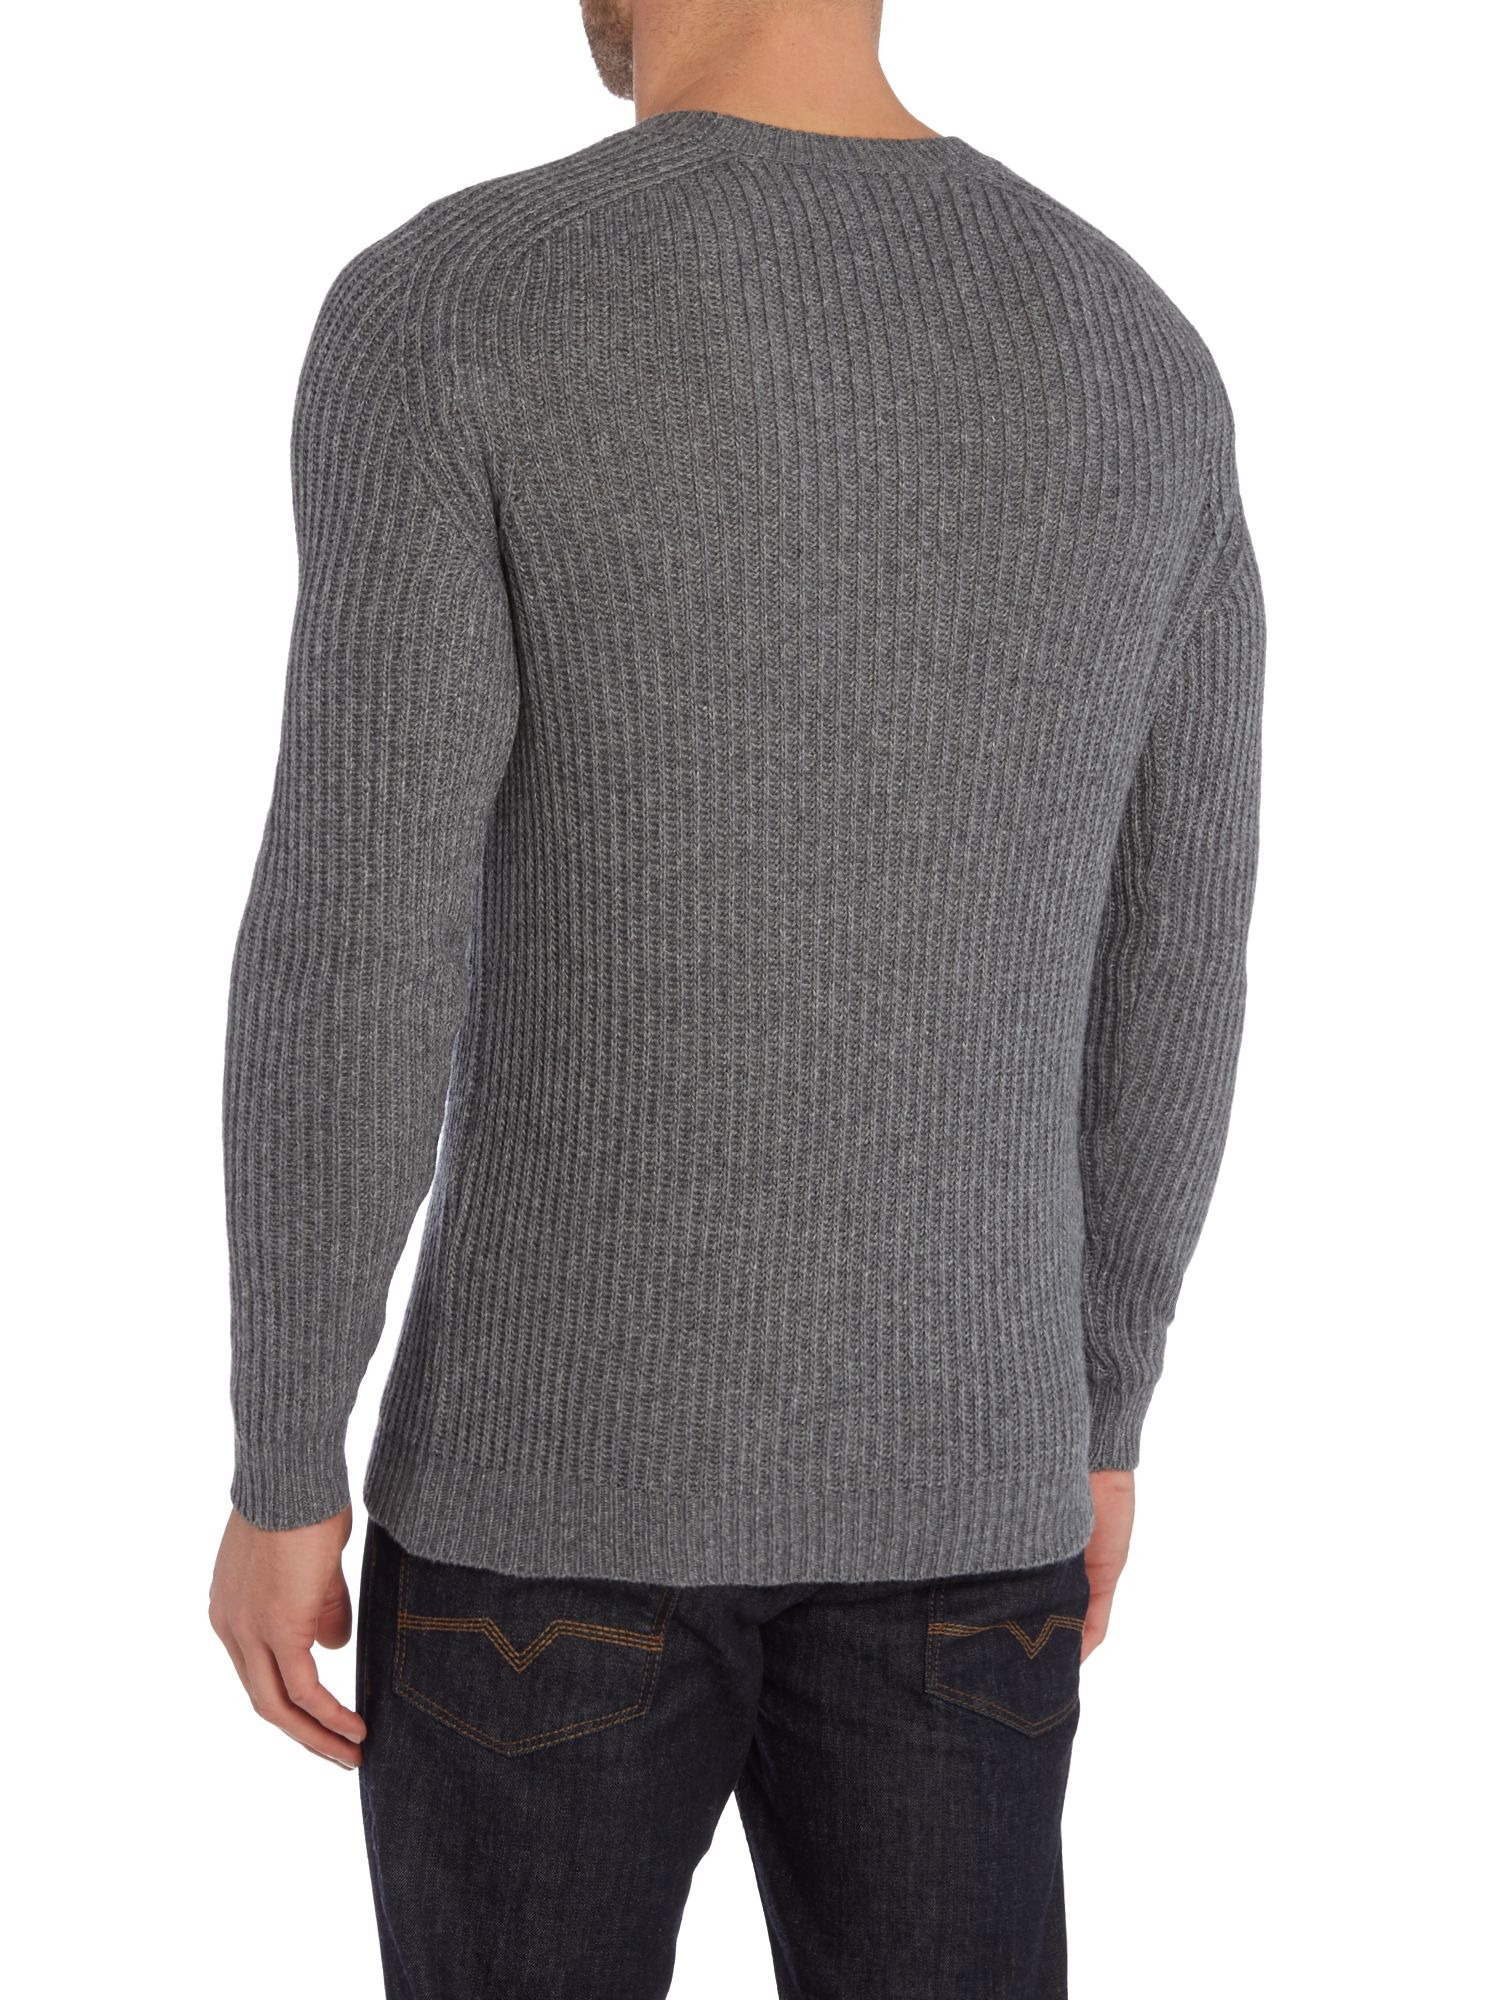 Updated for in a dark charcoal grey, the Men's Team Knitted Jumper comes in a striking hybrid material design with a woven nylon back and cotton-polyester knit.